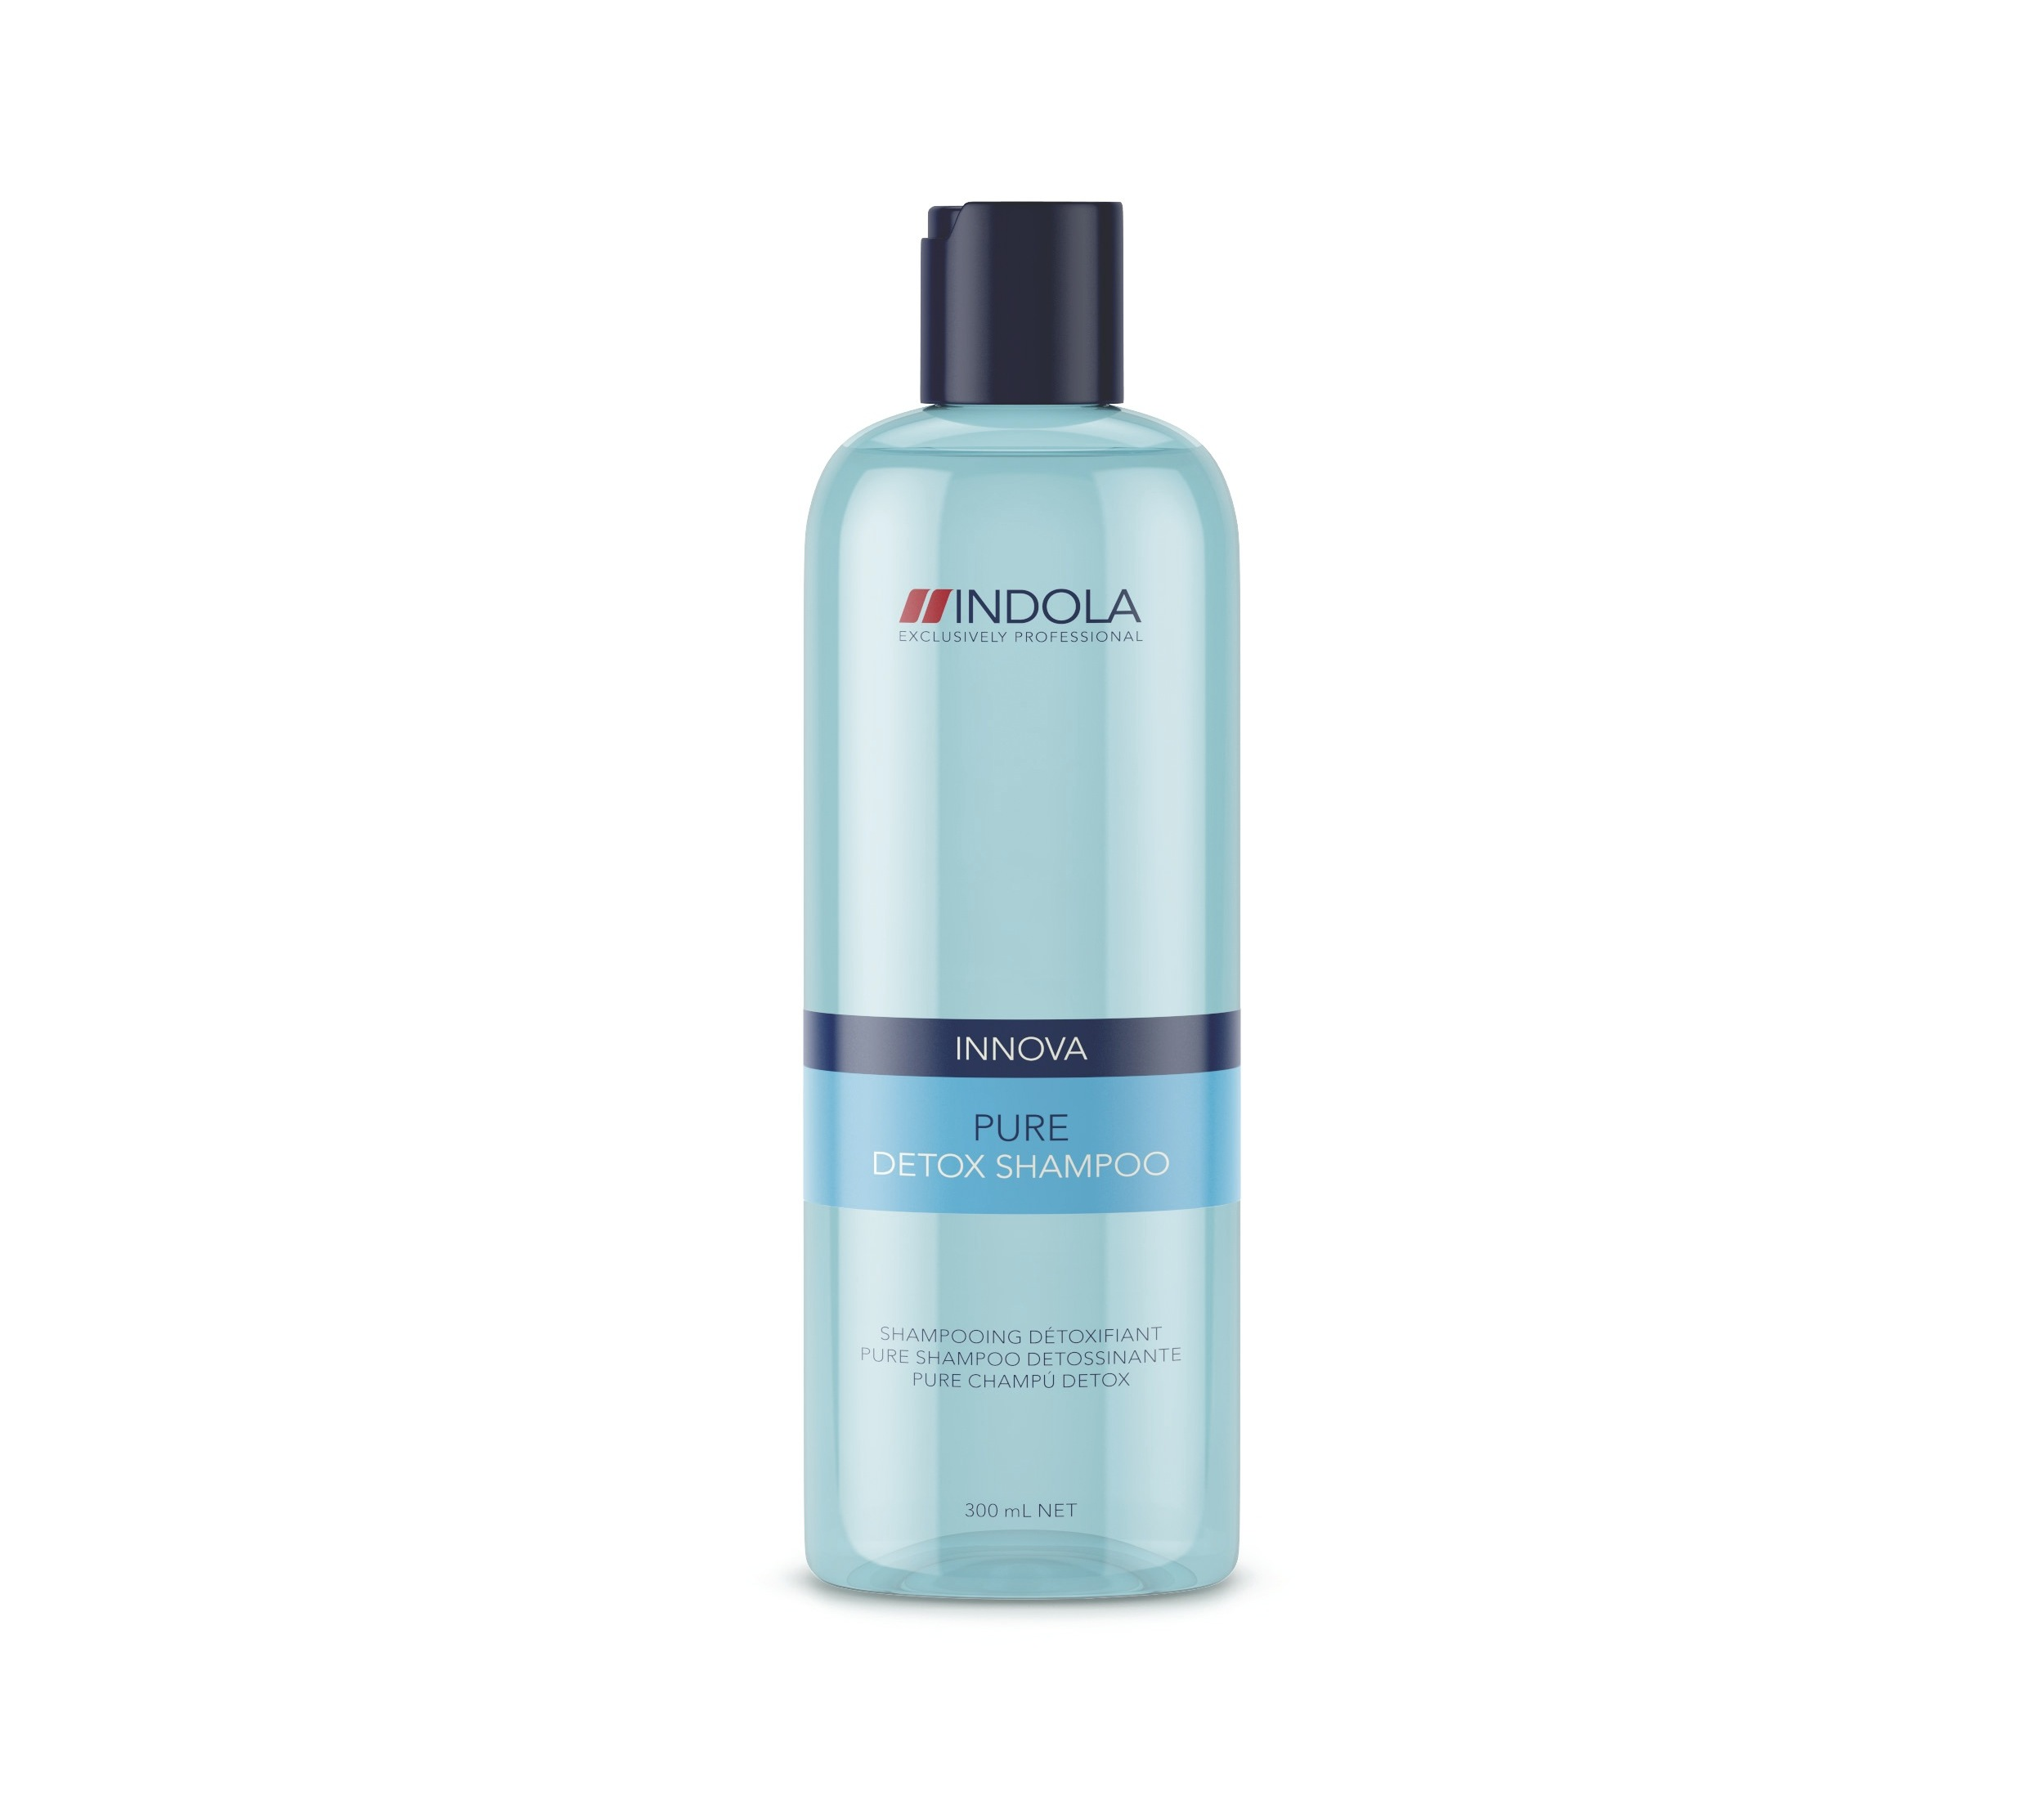 Indola Pure Shampoo 300ml